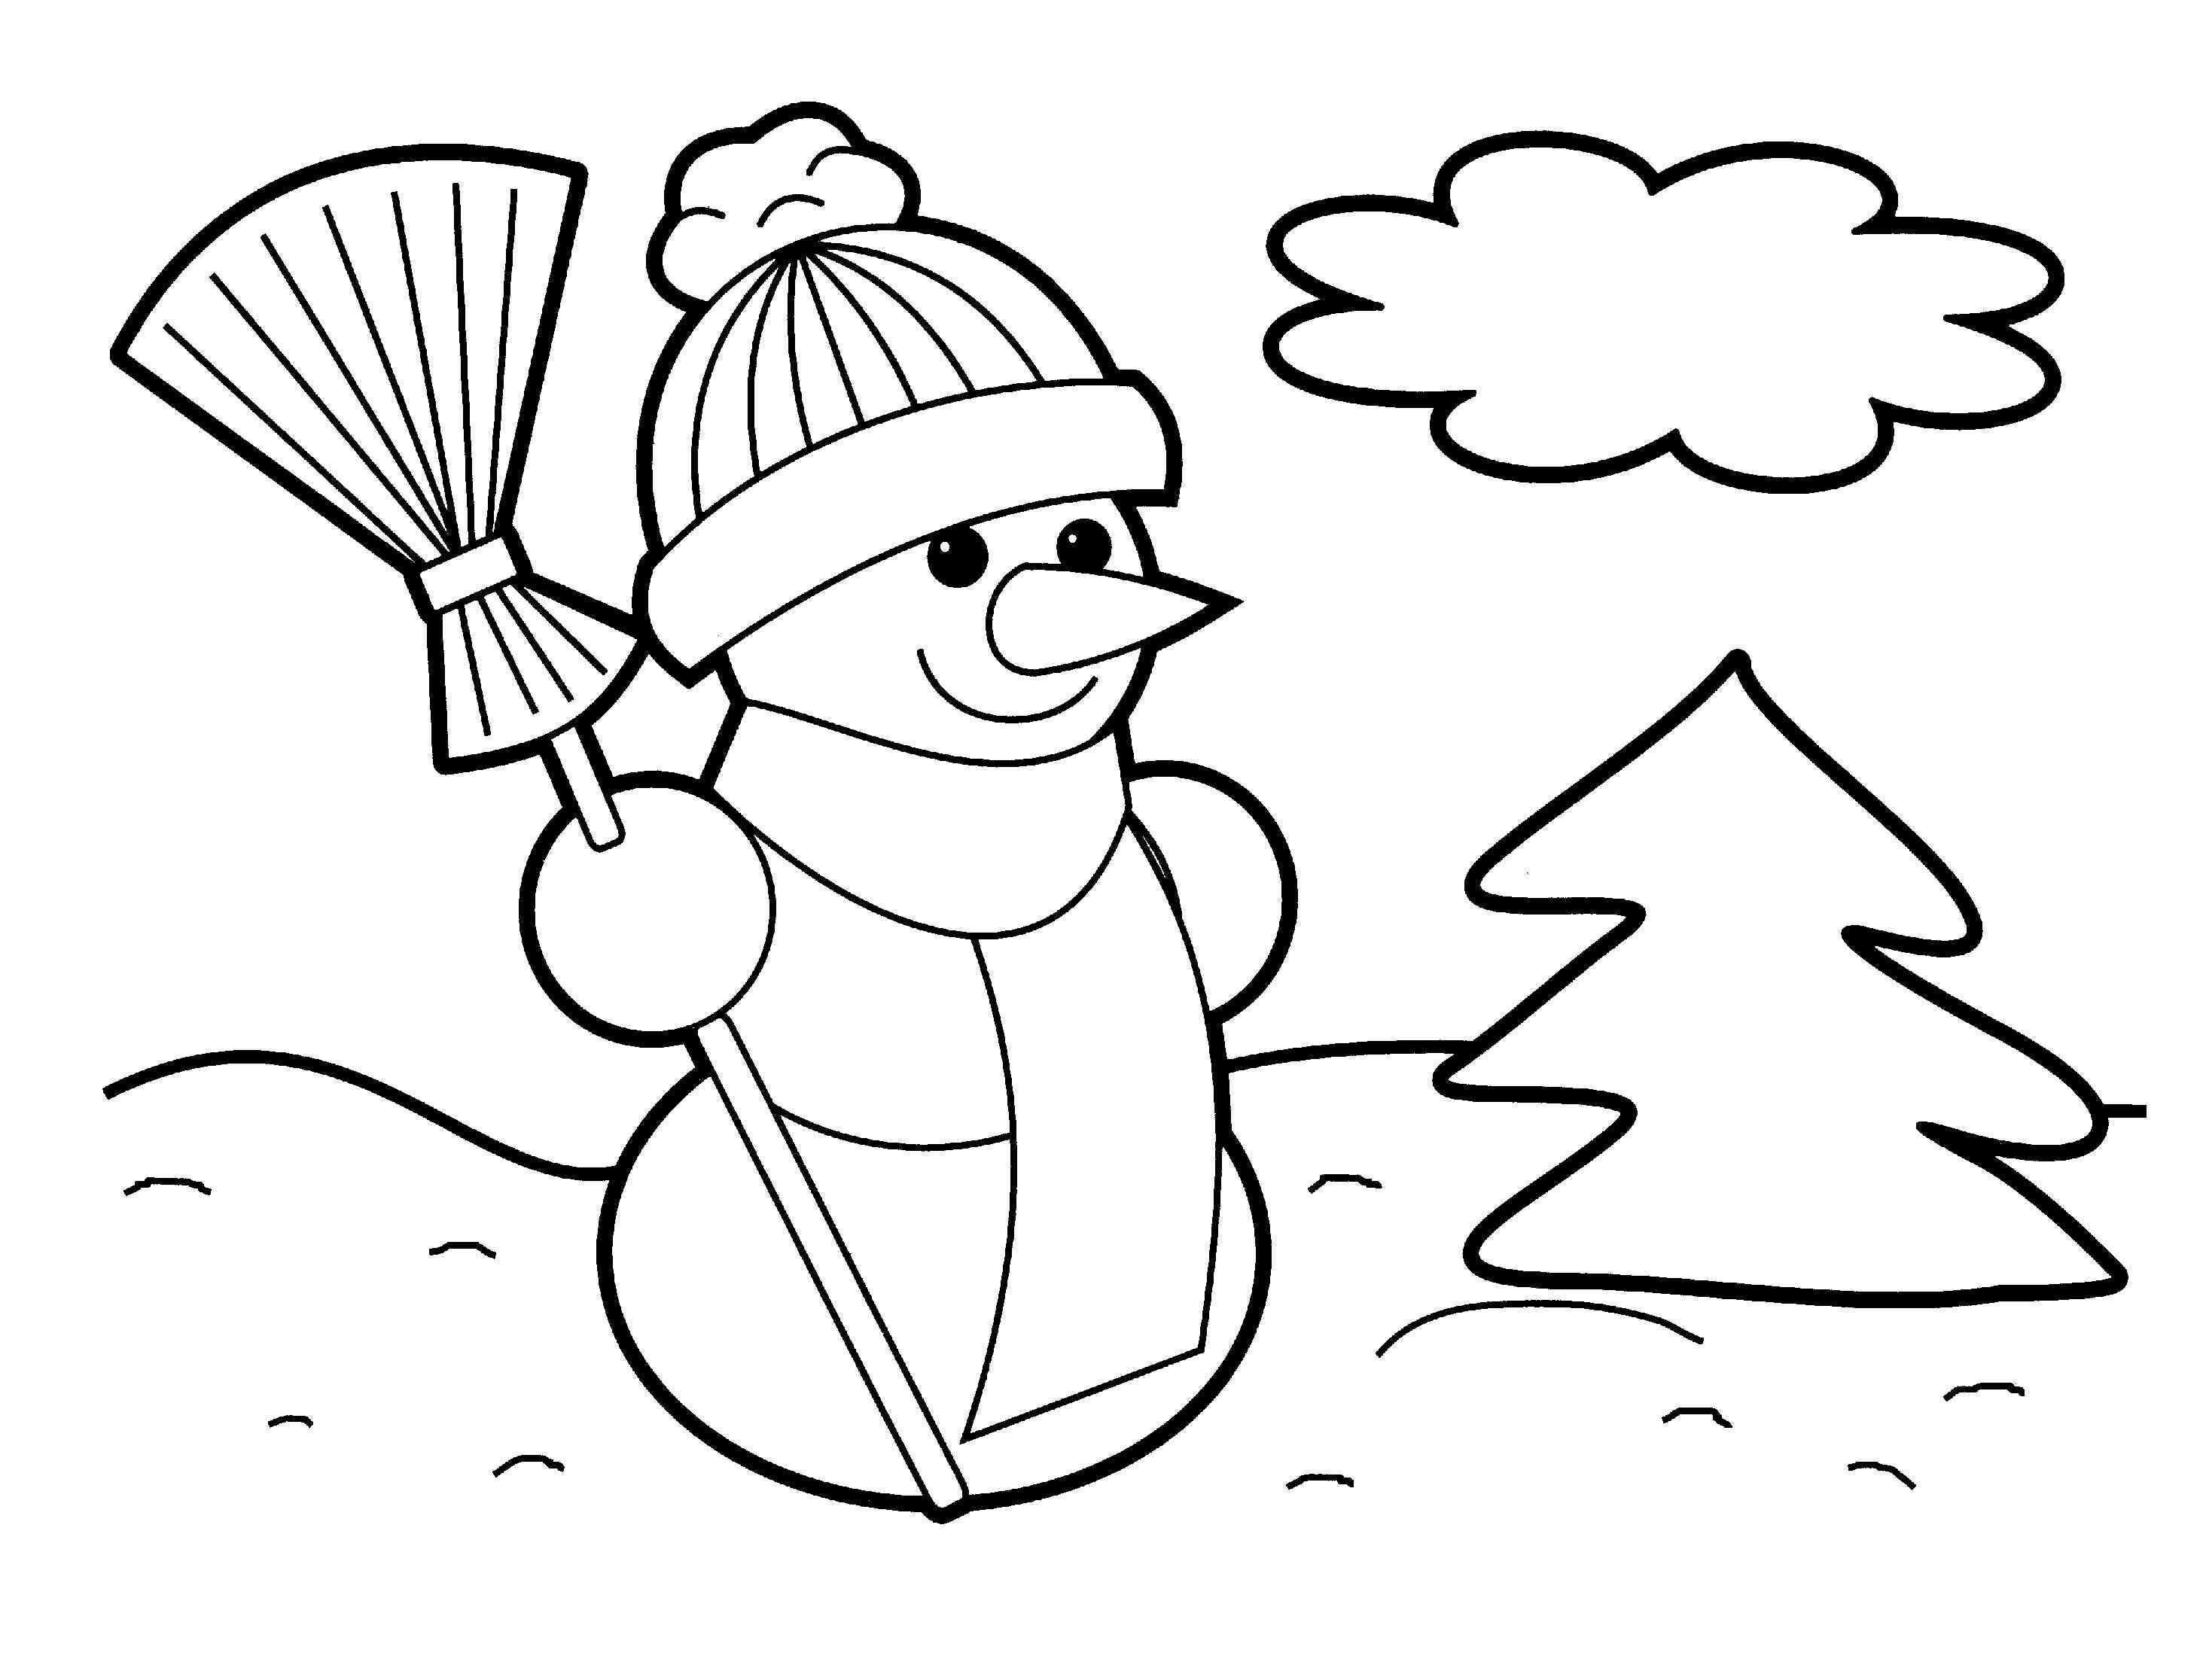 Christmas Coloring Pages For Students With Easy Printable